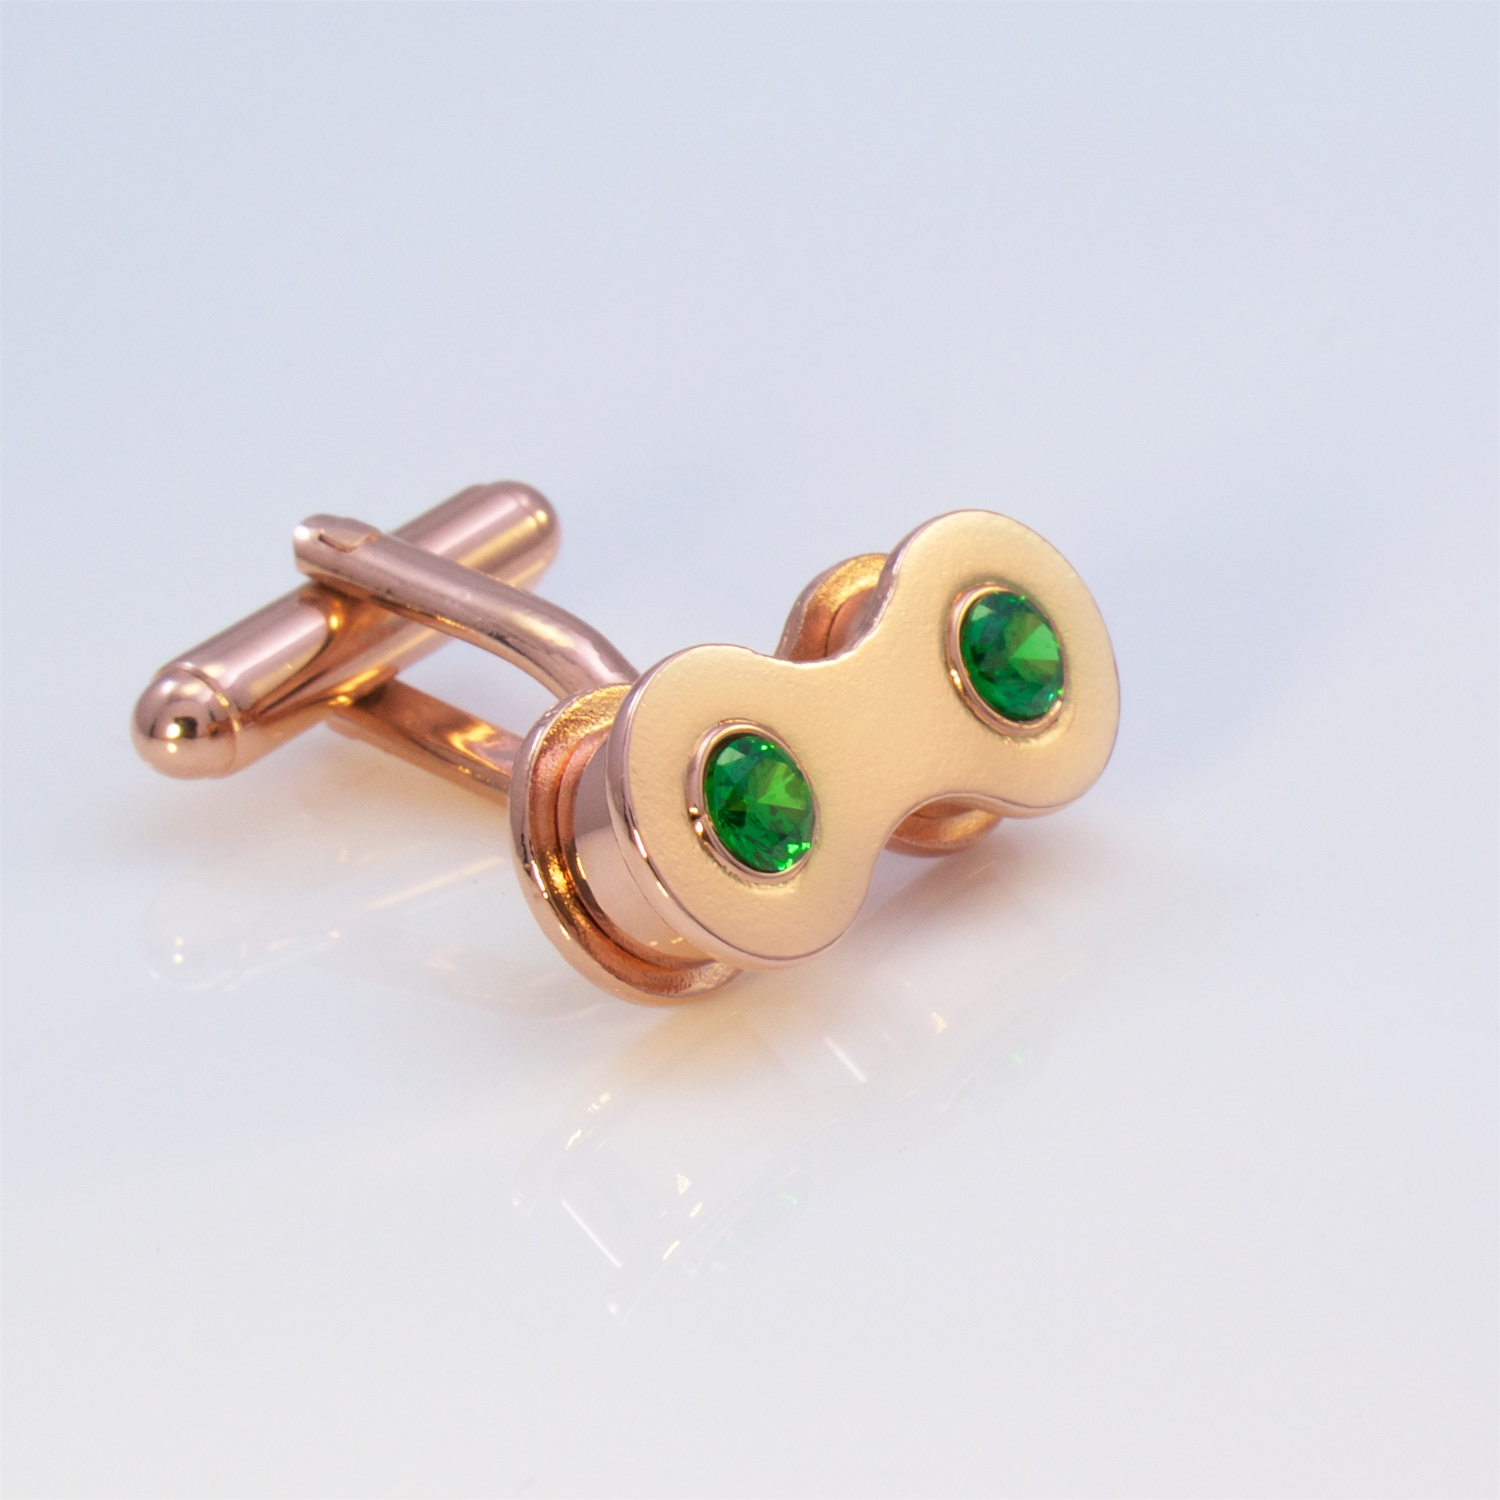 Rose gold cufflink with created emerald